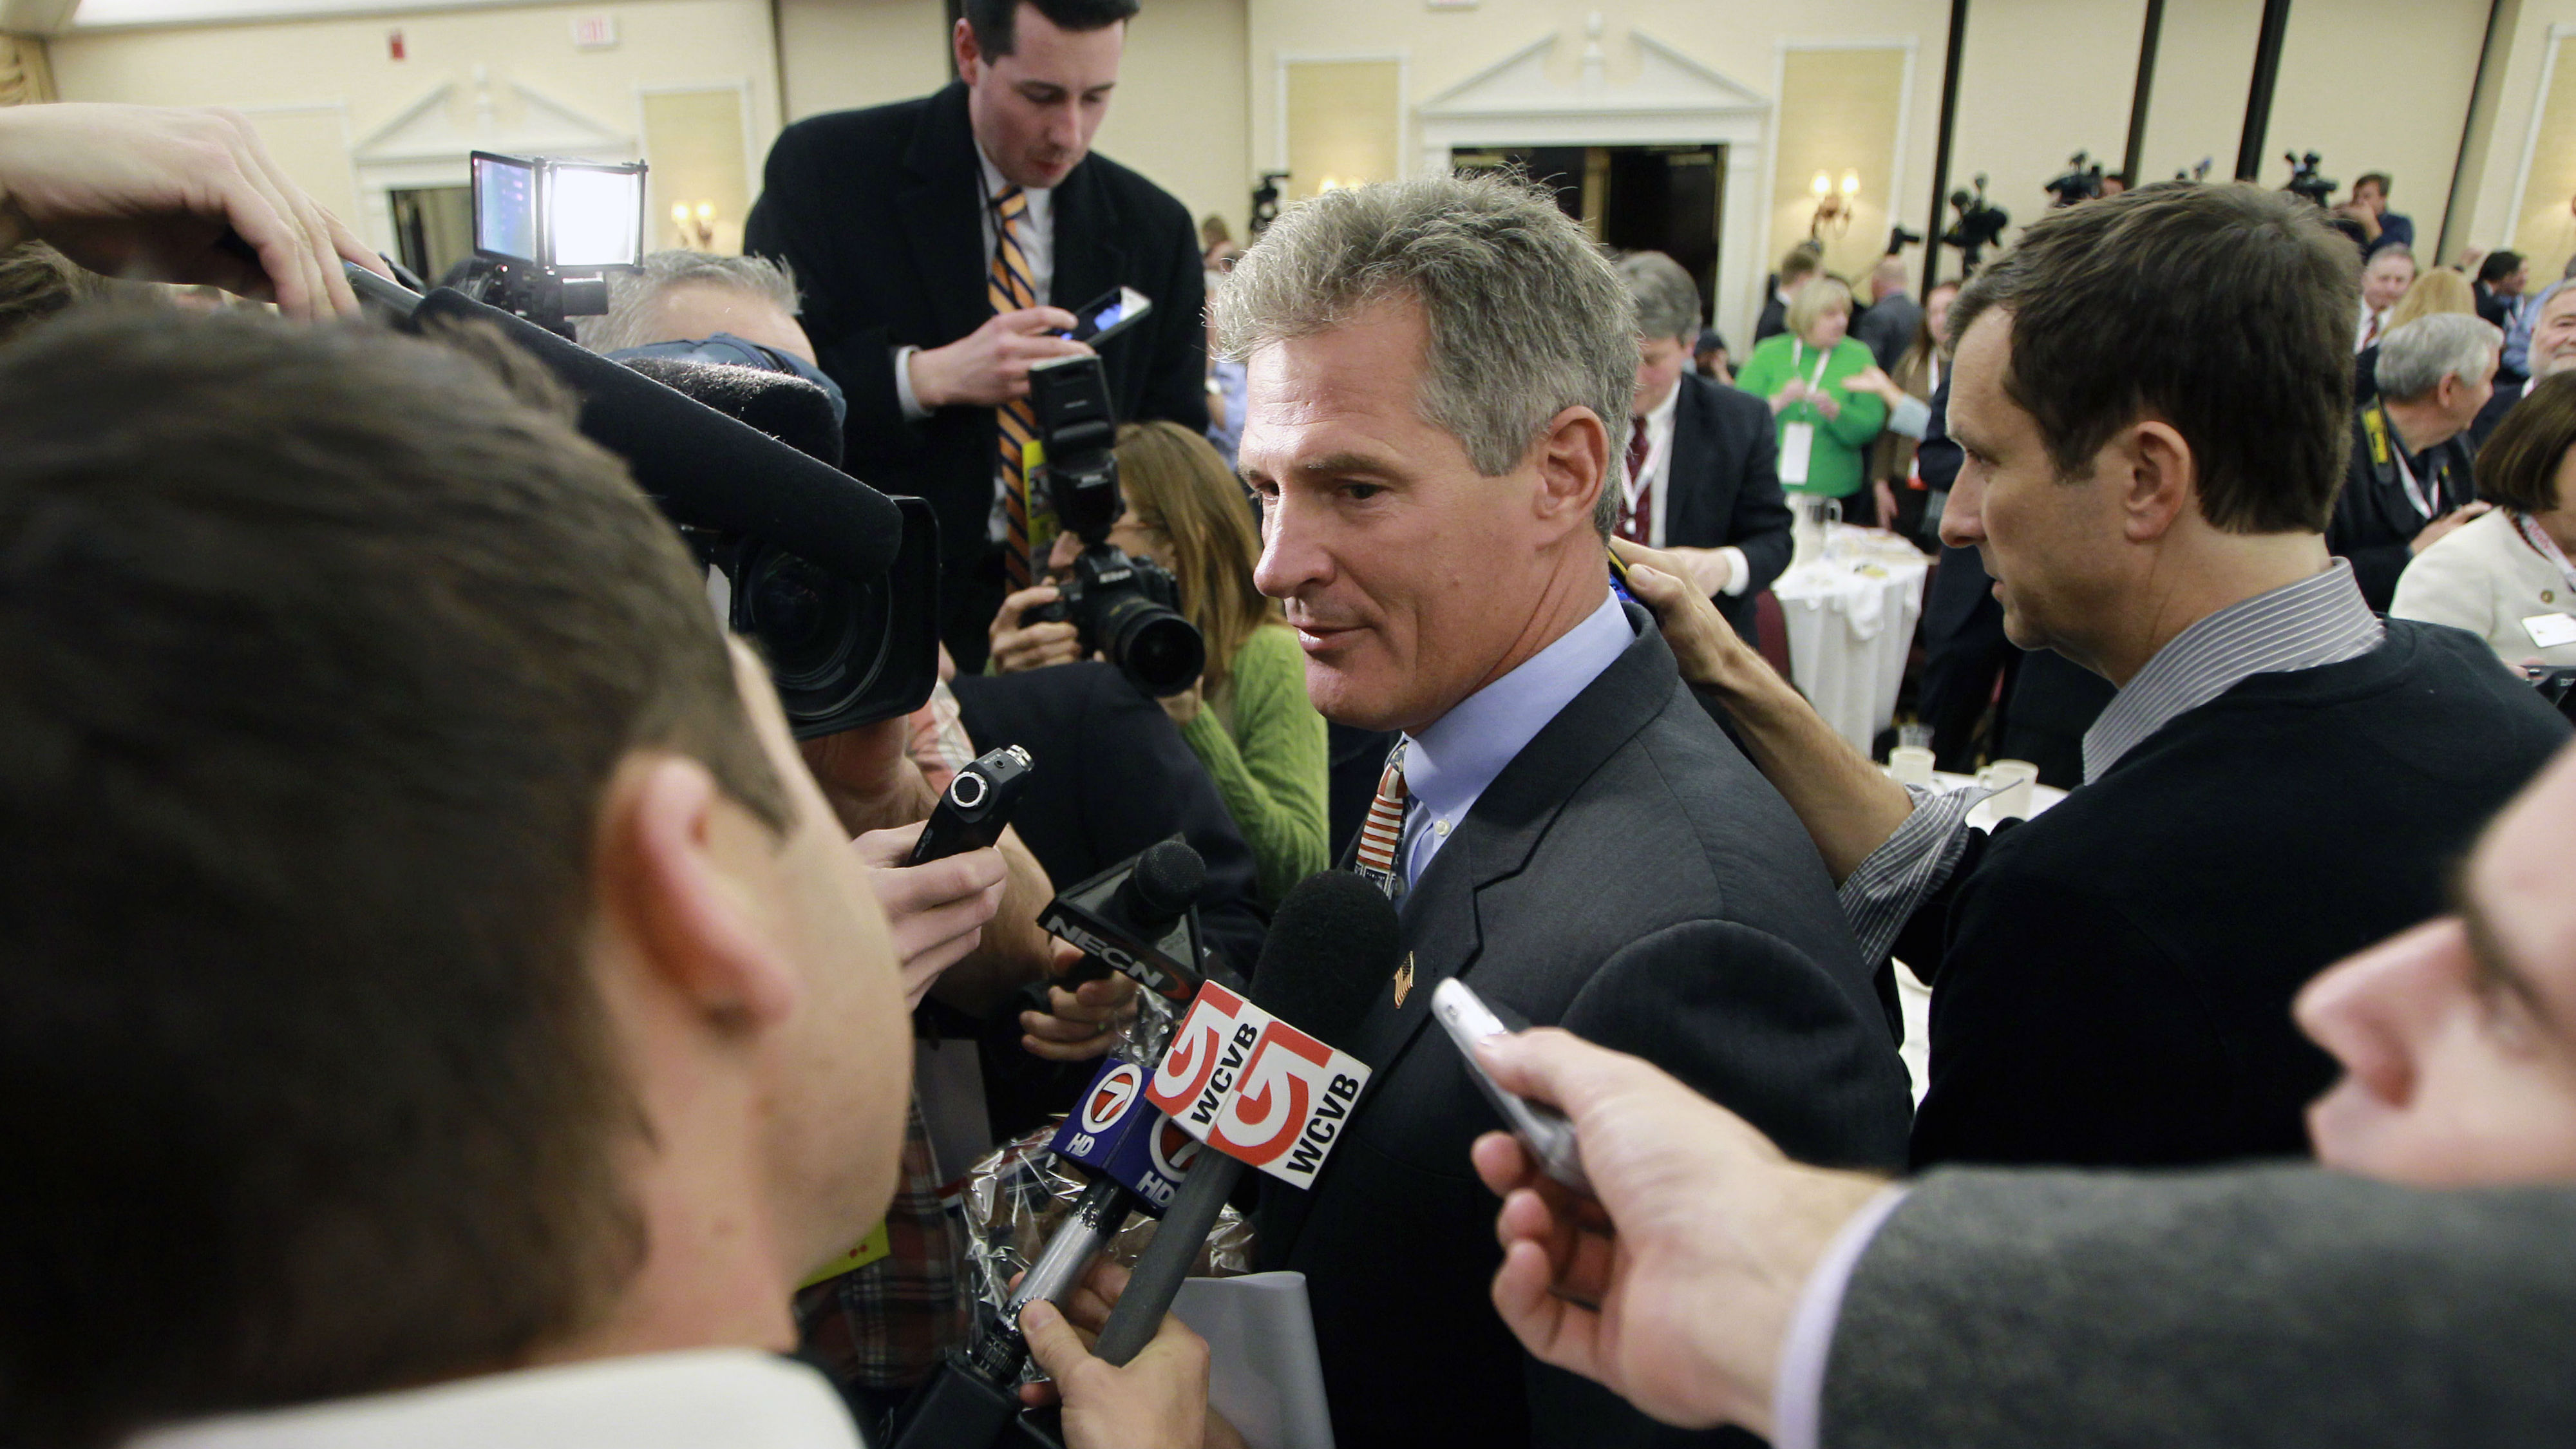 Former Sen. Scott Brown, center, leaves the ball room at the Republican Leadership Conference after announcing plans to form an exploratory committee to enter New Hampshire's U.S. Senate race against Democratic Sen. Jeanne Shaheen on Friday in Nashua, N.H.